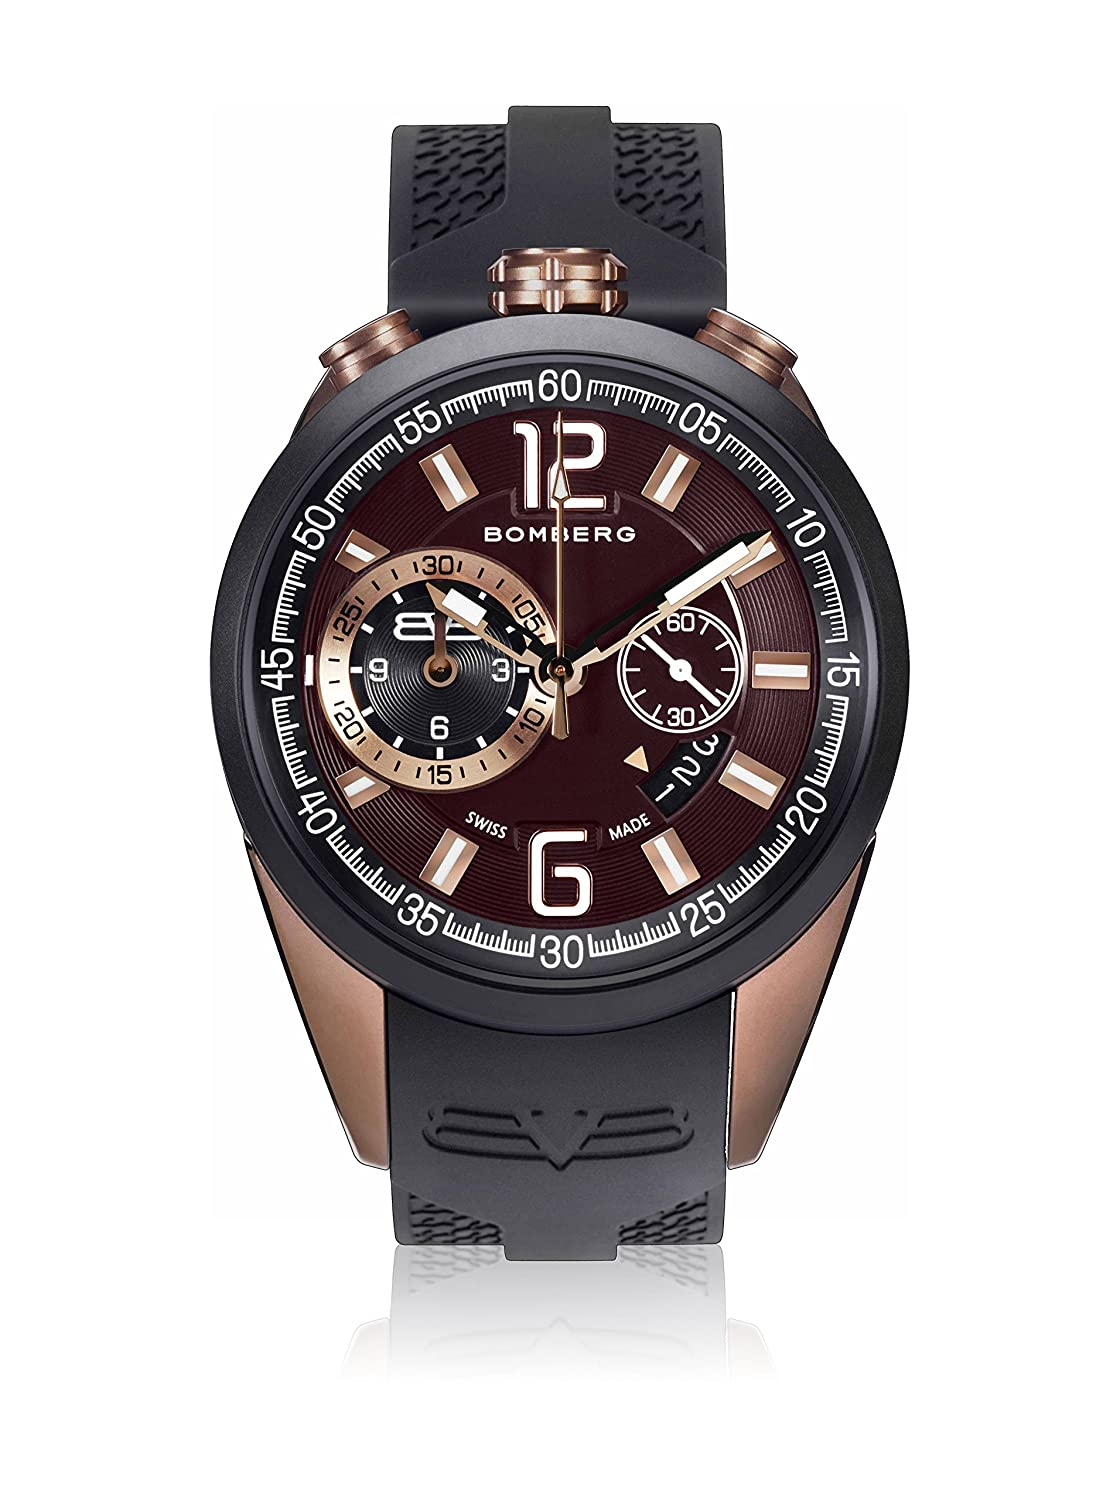 Bomberg NS44CHTT.0088.2 1968 collection Uhren - Swiss Made - 44 mm